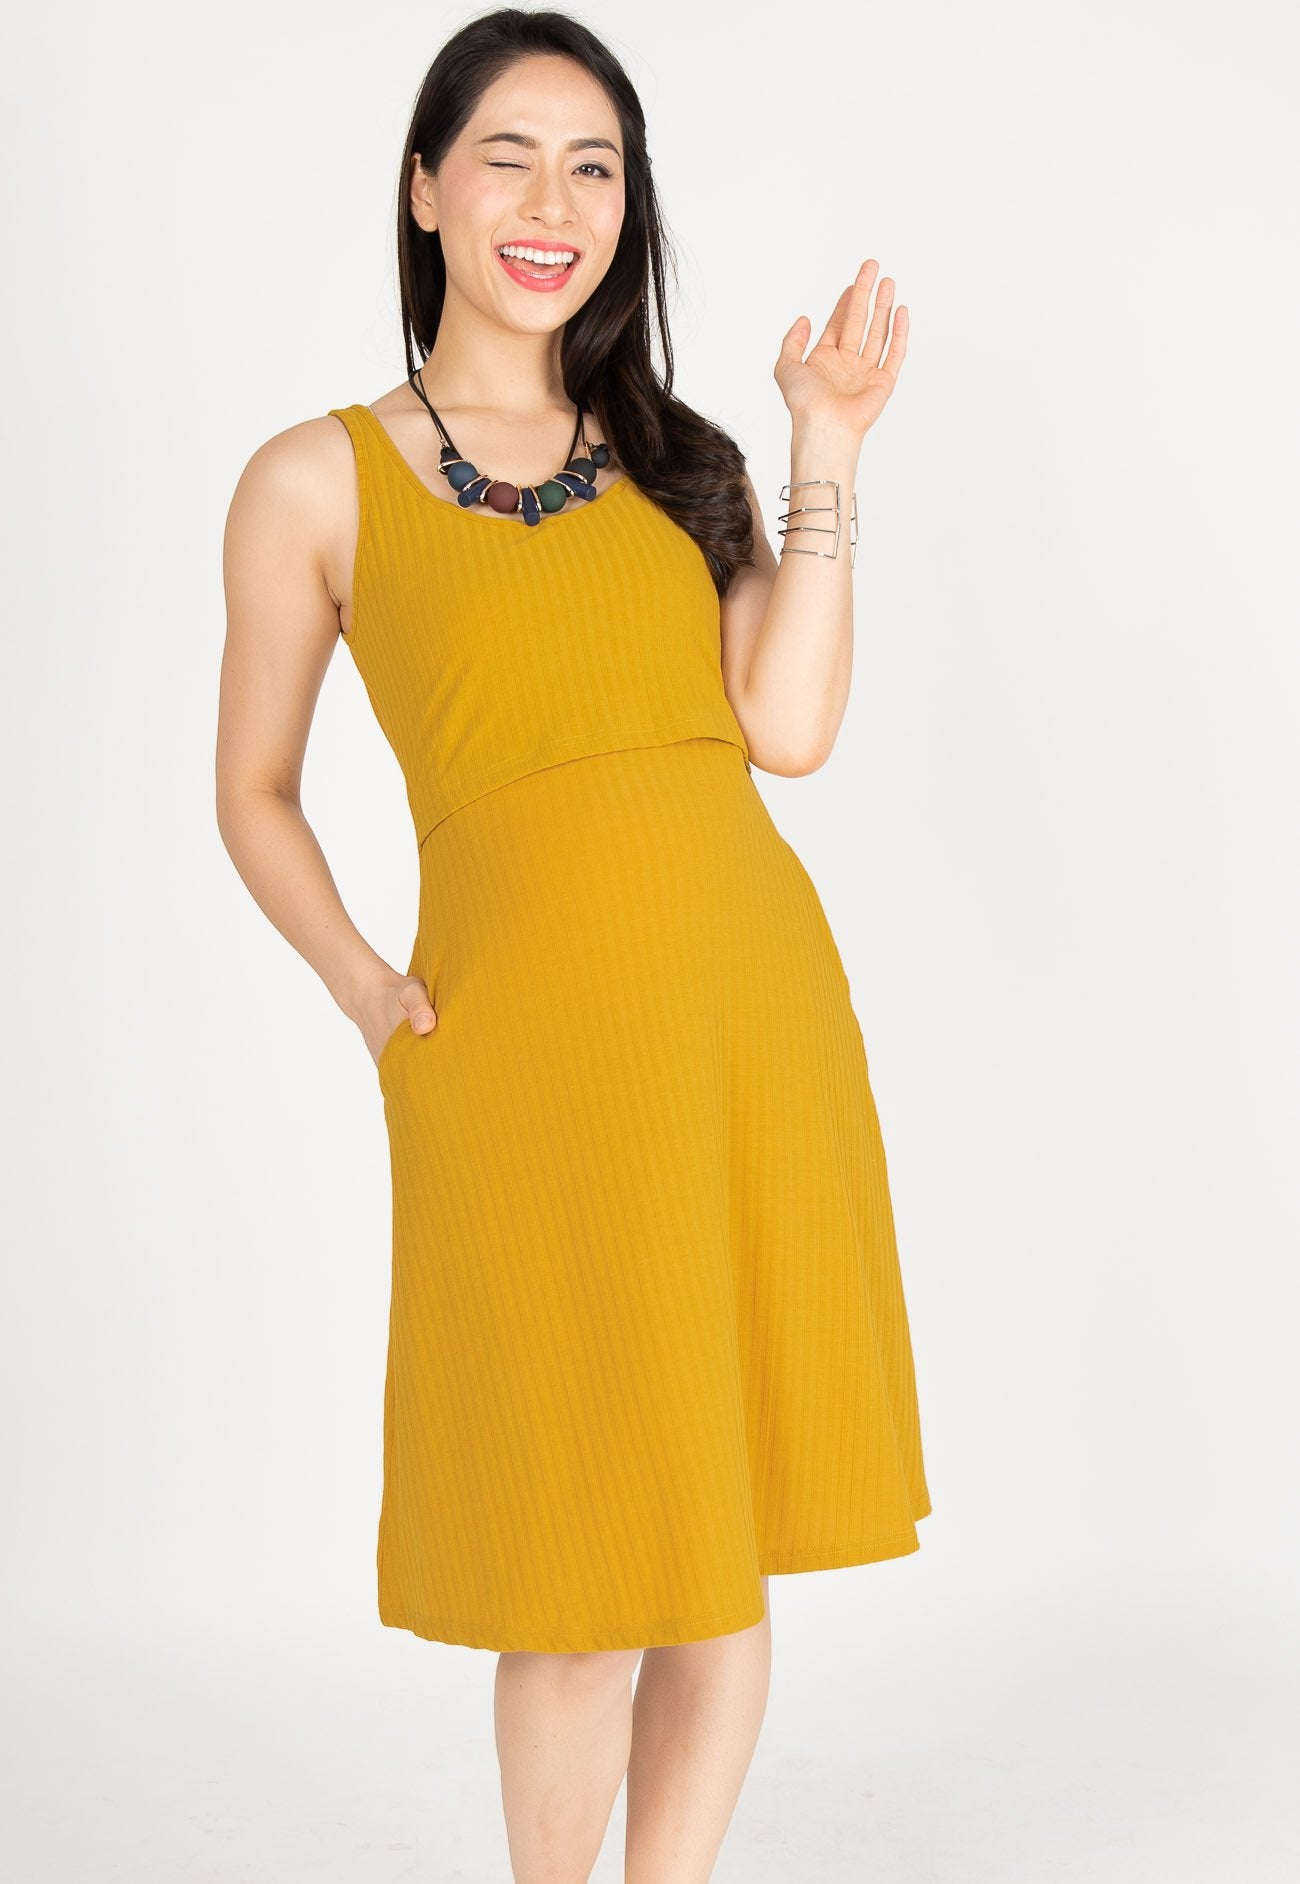 6258bcb826 ... Knitted Nursing Swing Dress in Yellow by Jump Eat Cry - Maternity and  nursing wear ...